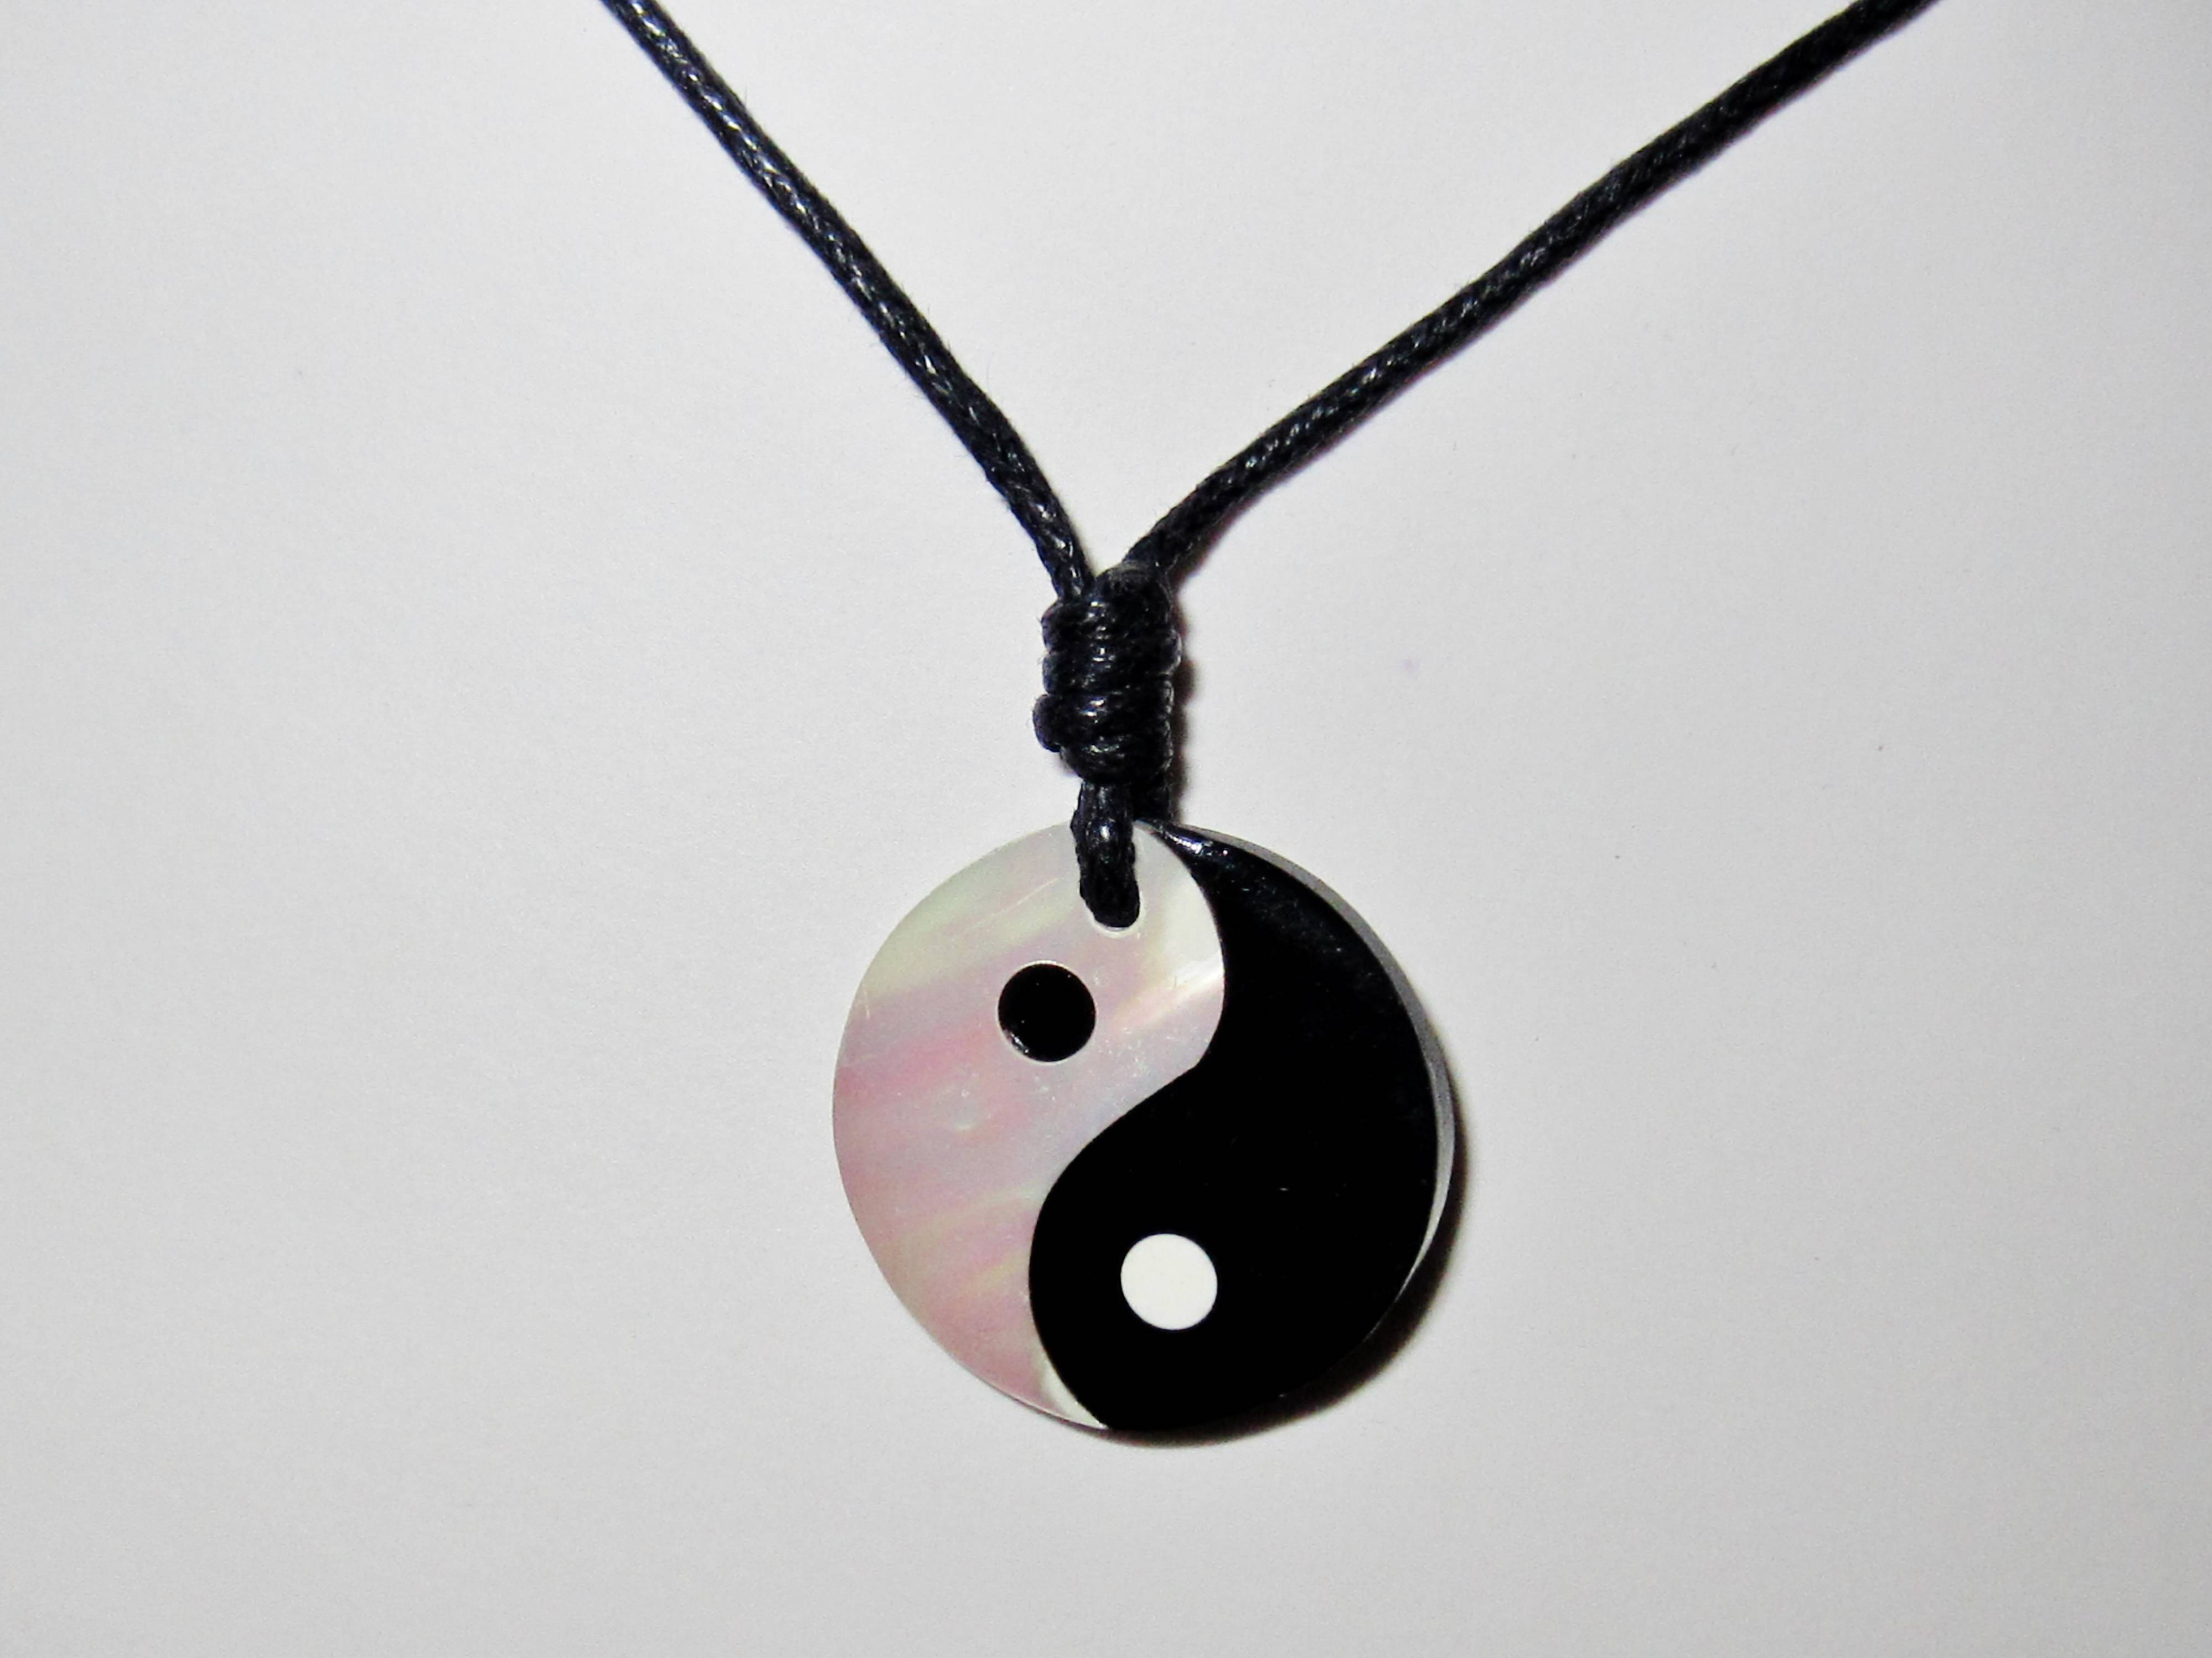 Black White Yin Ying Yang Pendant With Black Cord Necklace